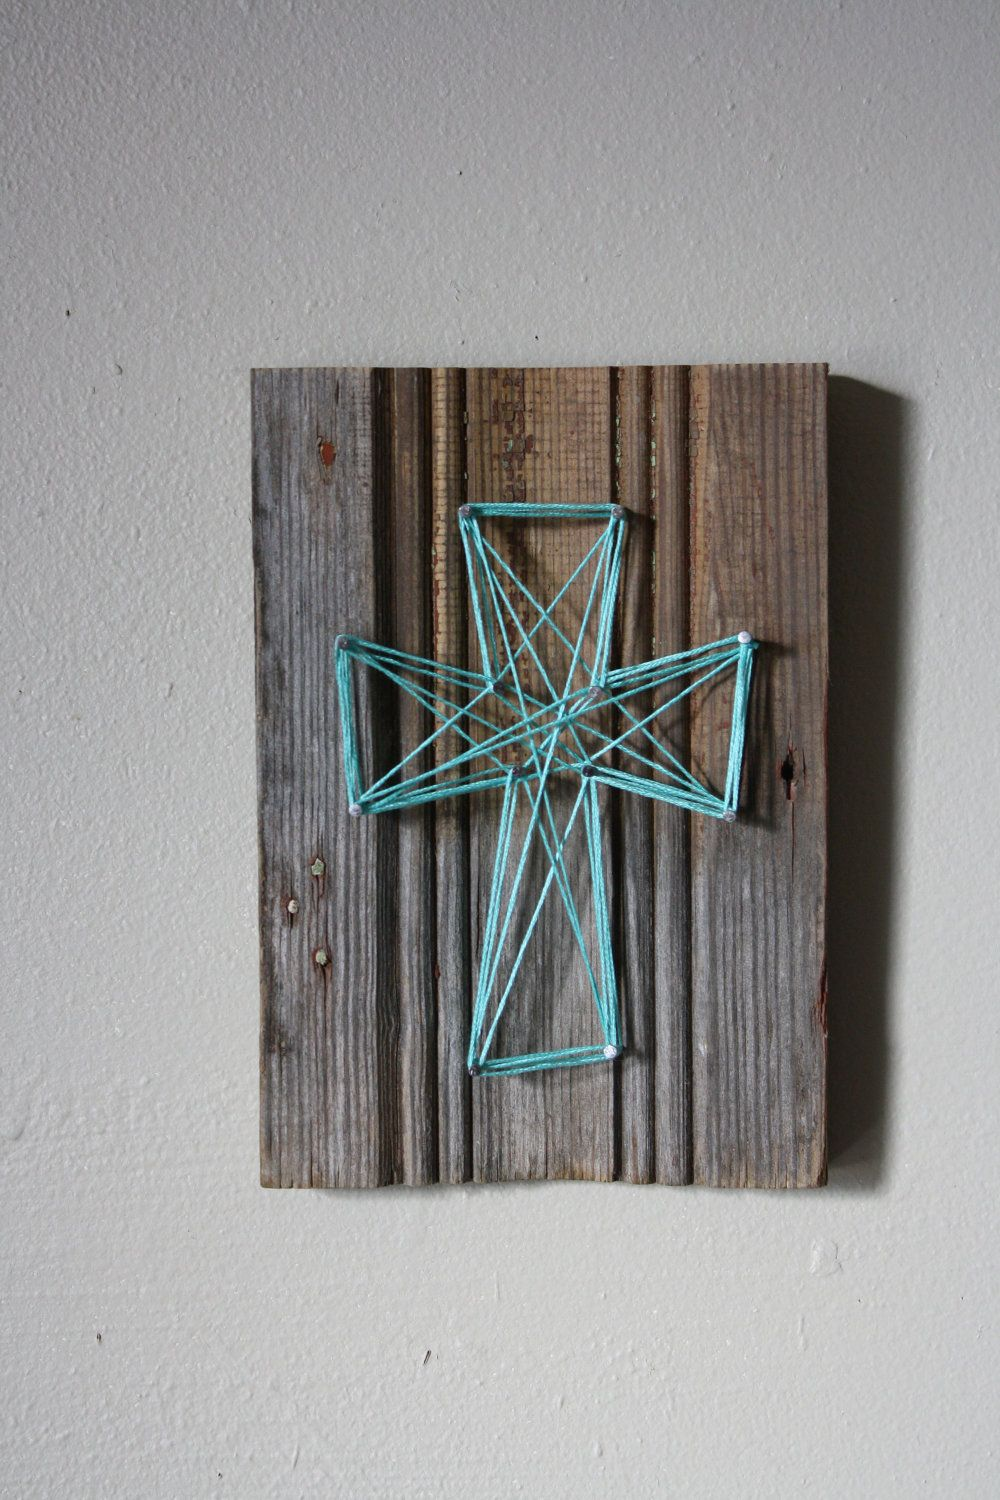 Reclaimed wood trim with string art cross wall decor projects to